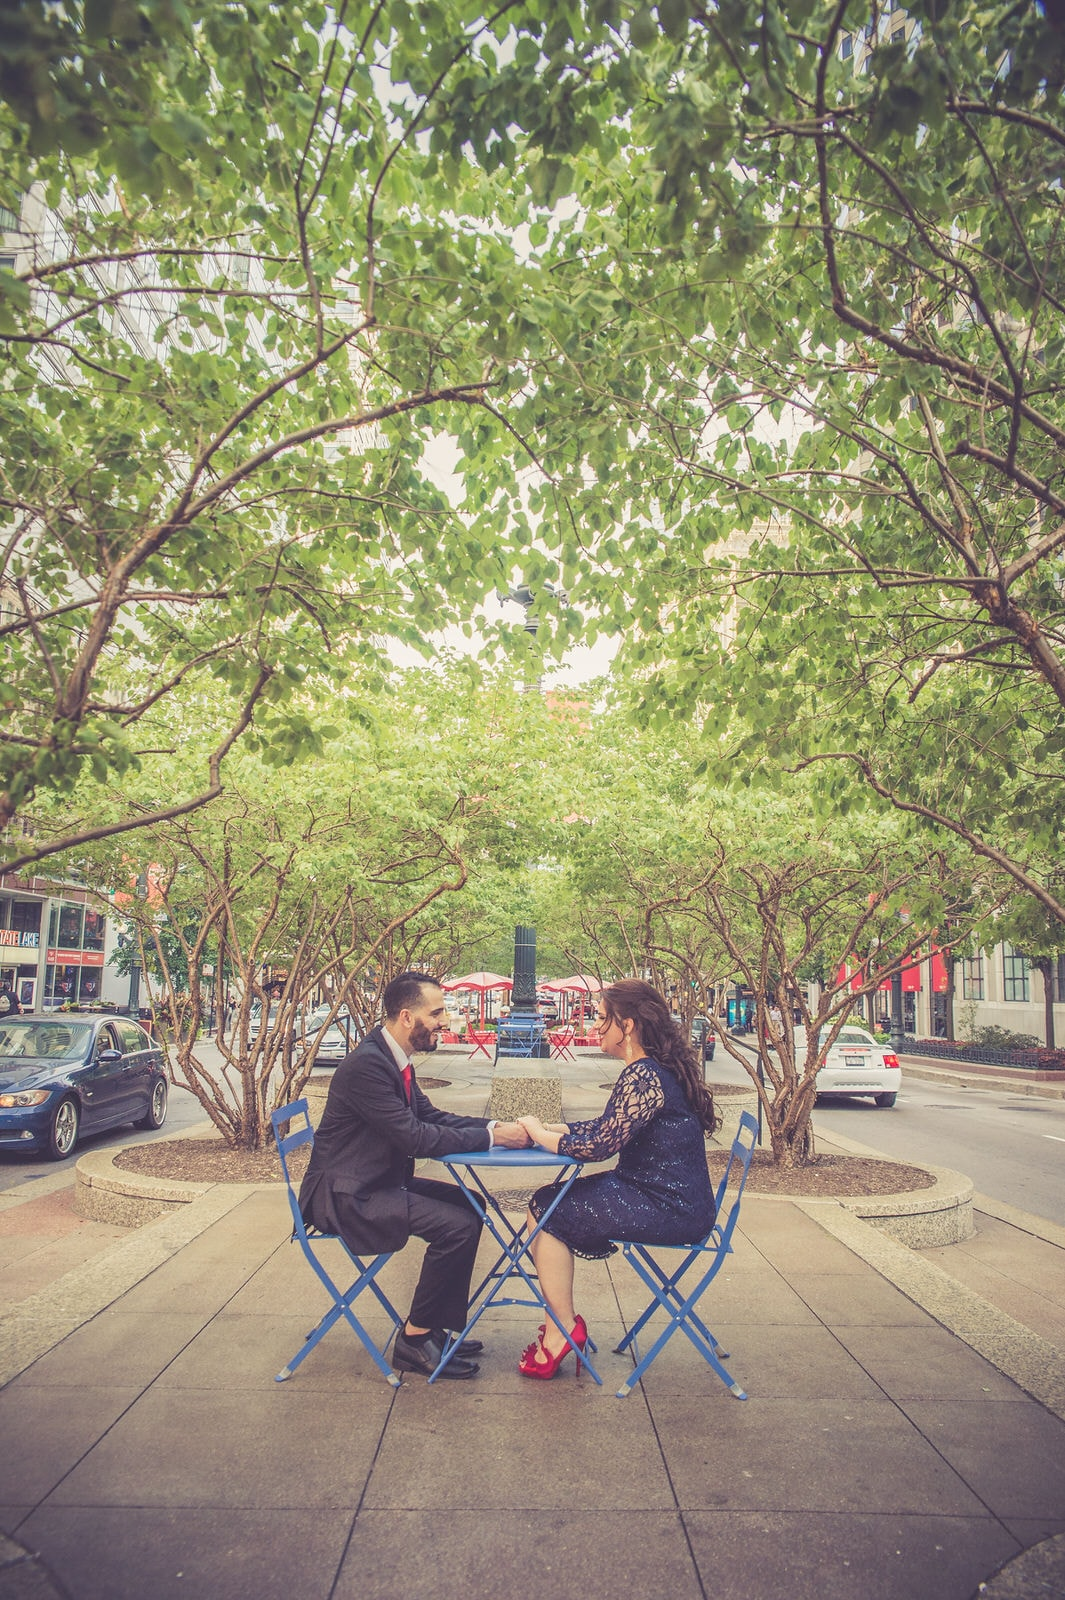 The couple is sitting at a table in downtown holding hands.